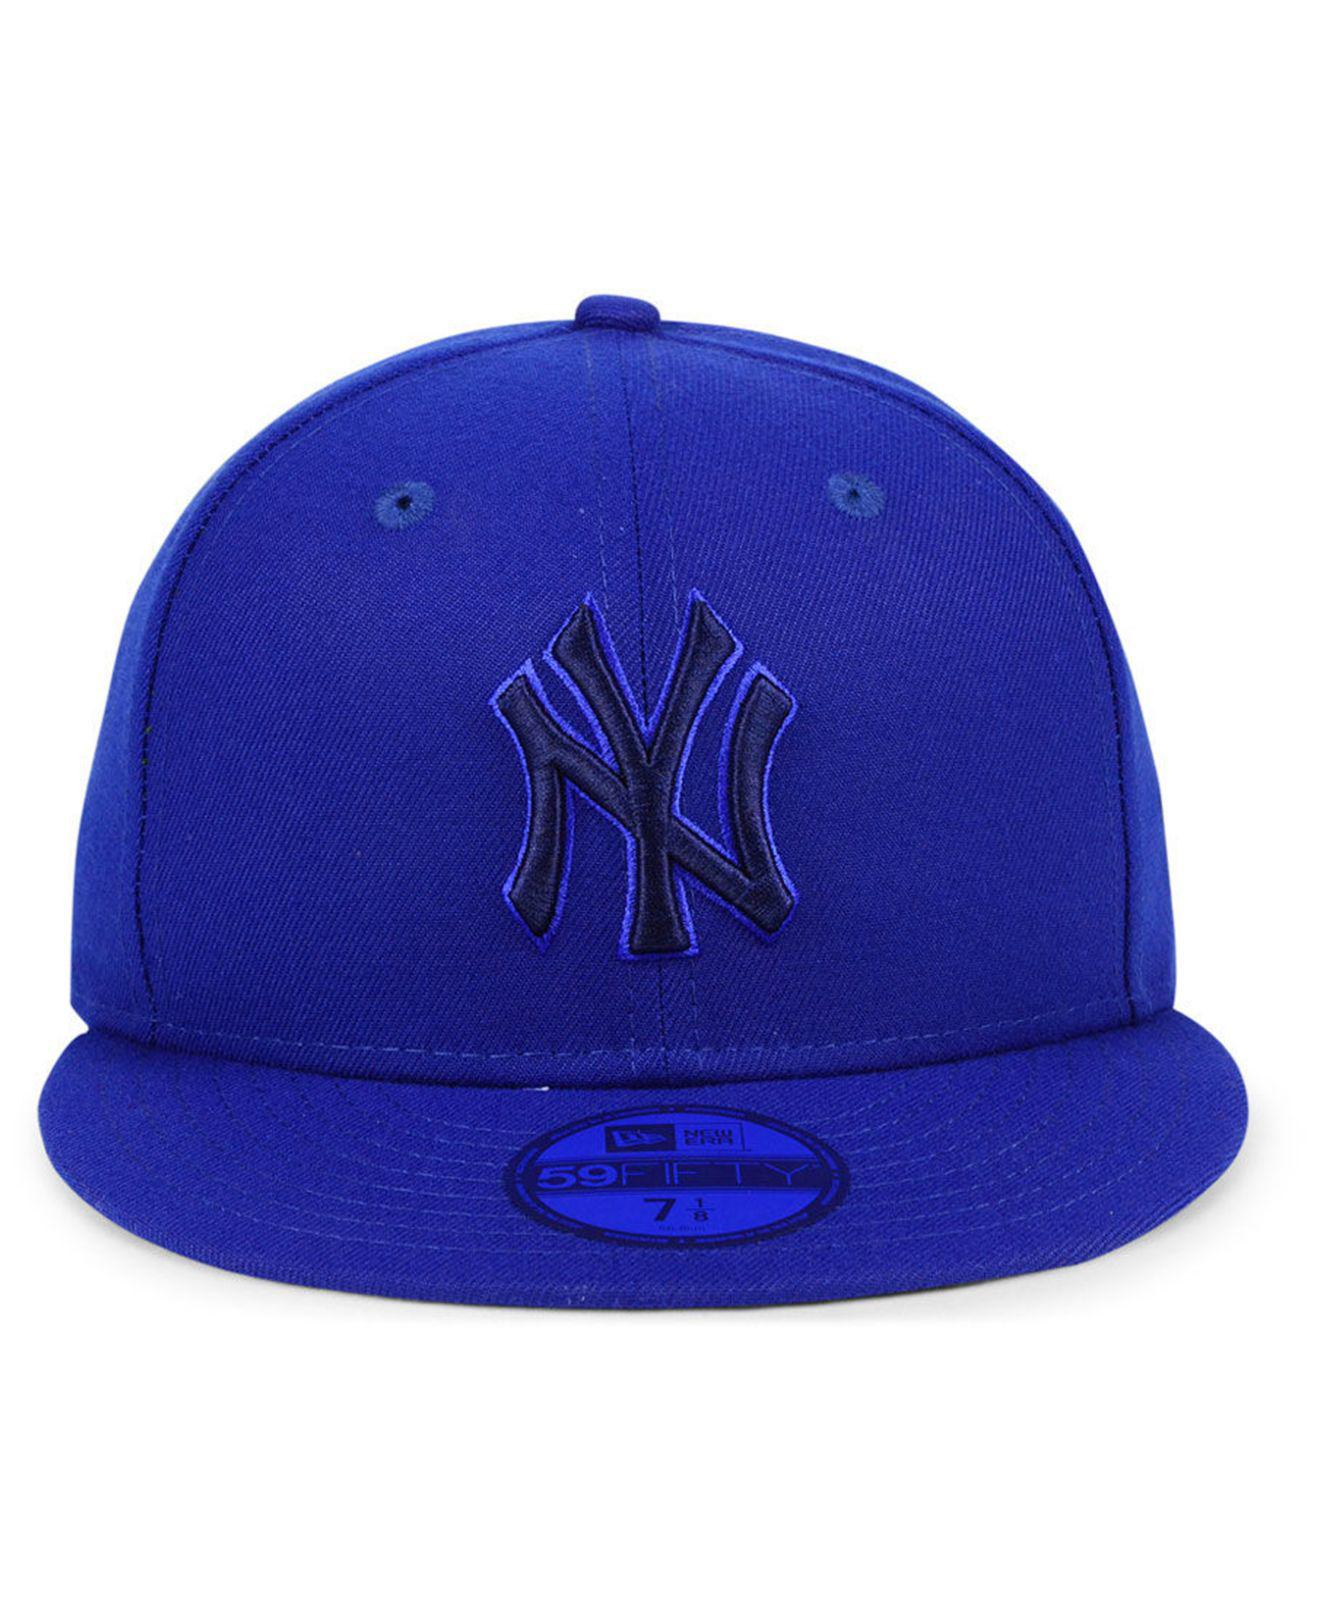 038ce84f5f3 Lyst - Ktz New York Yankees Prism Color Pack 59fifty Fitted Cap in Blue for  Men